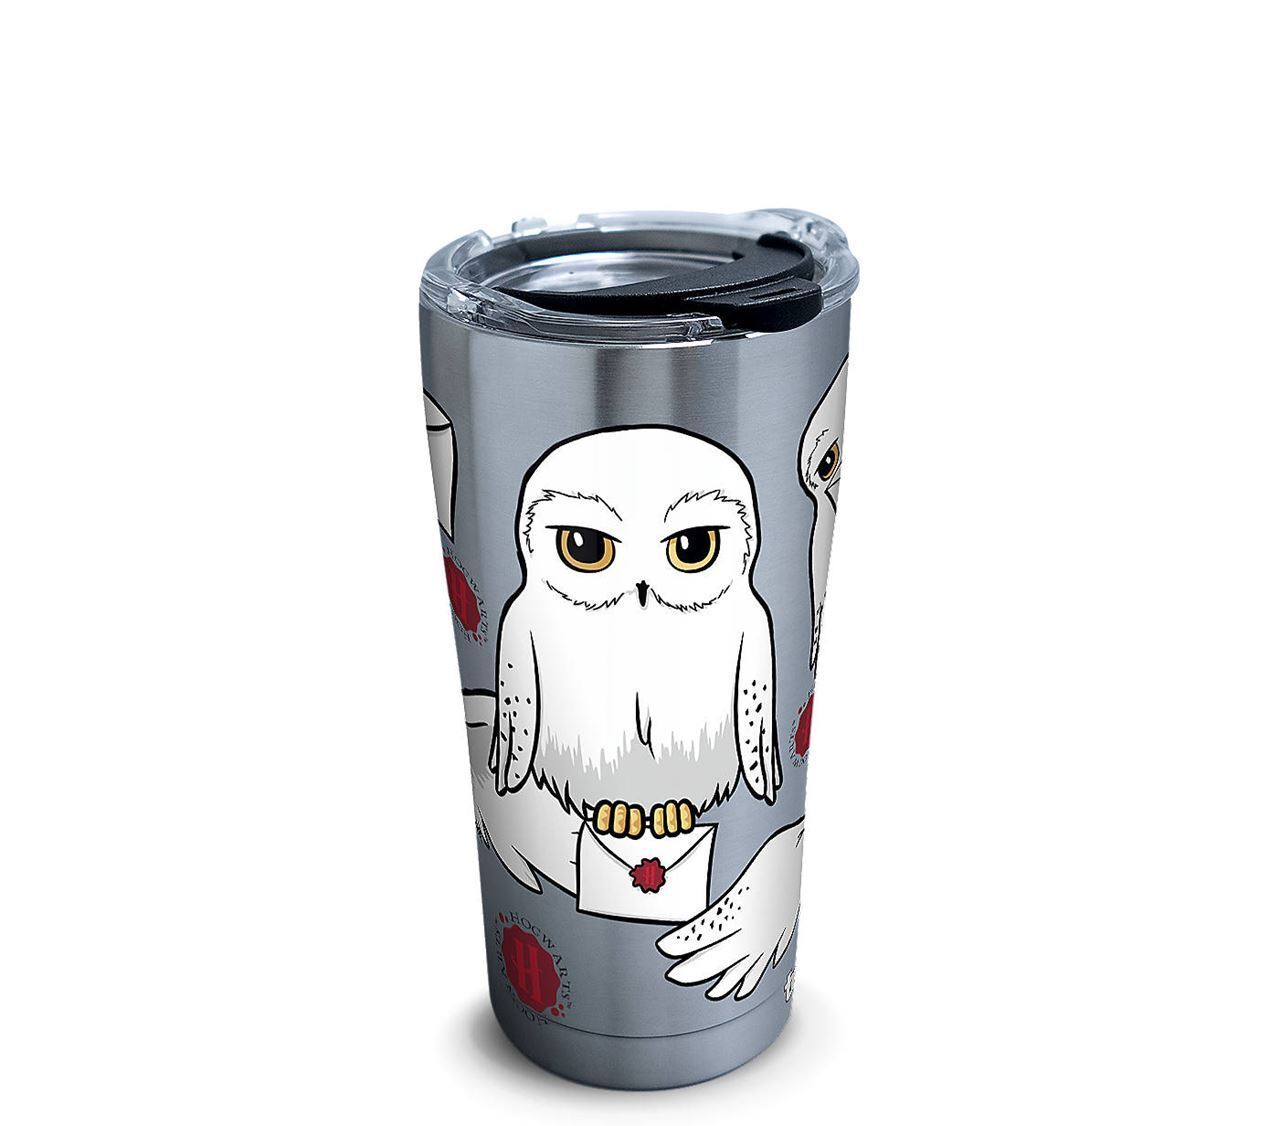 Tervis Tumbler Company - Stainless Steel Tumbler Hedwig - 20oz - 1315108